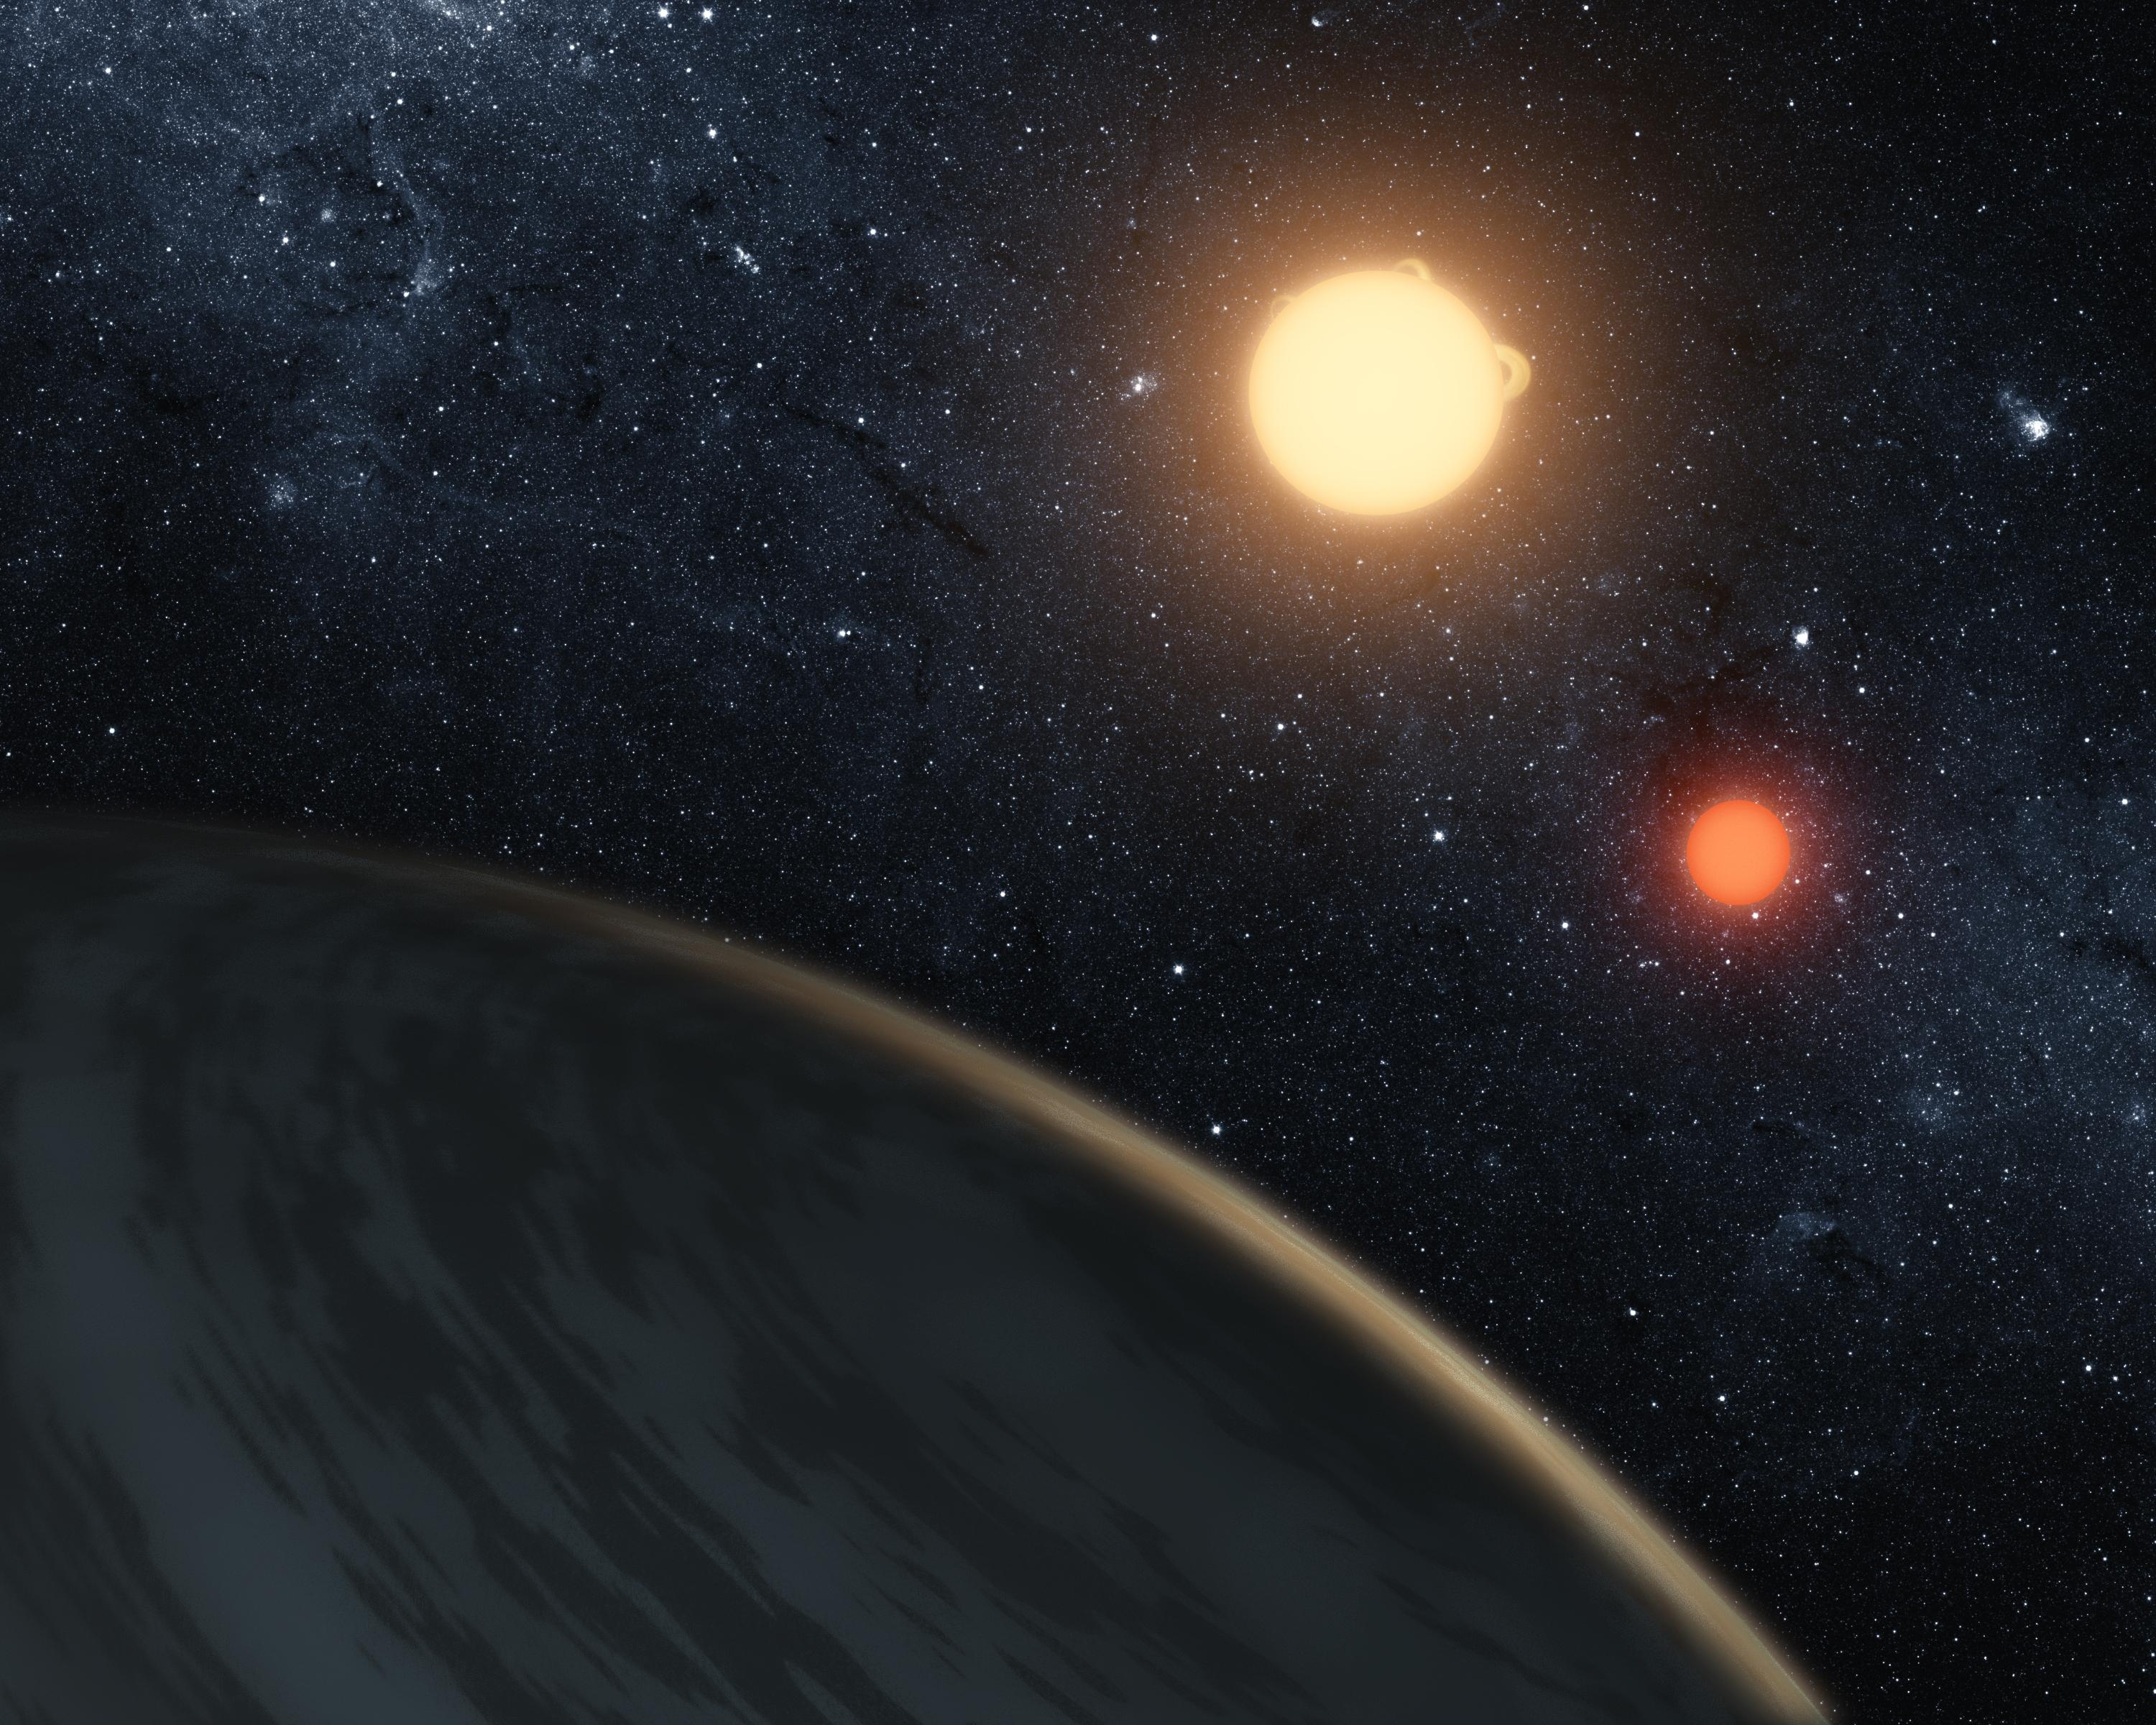 Phoenix Planets: Some 'Tatooine' Worlds May Rise from Stellar Ashes